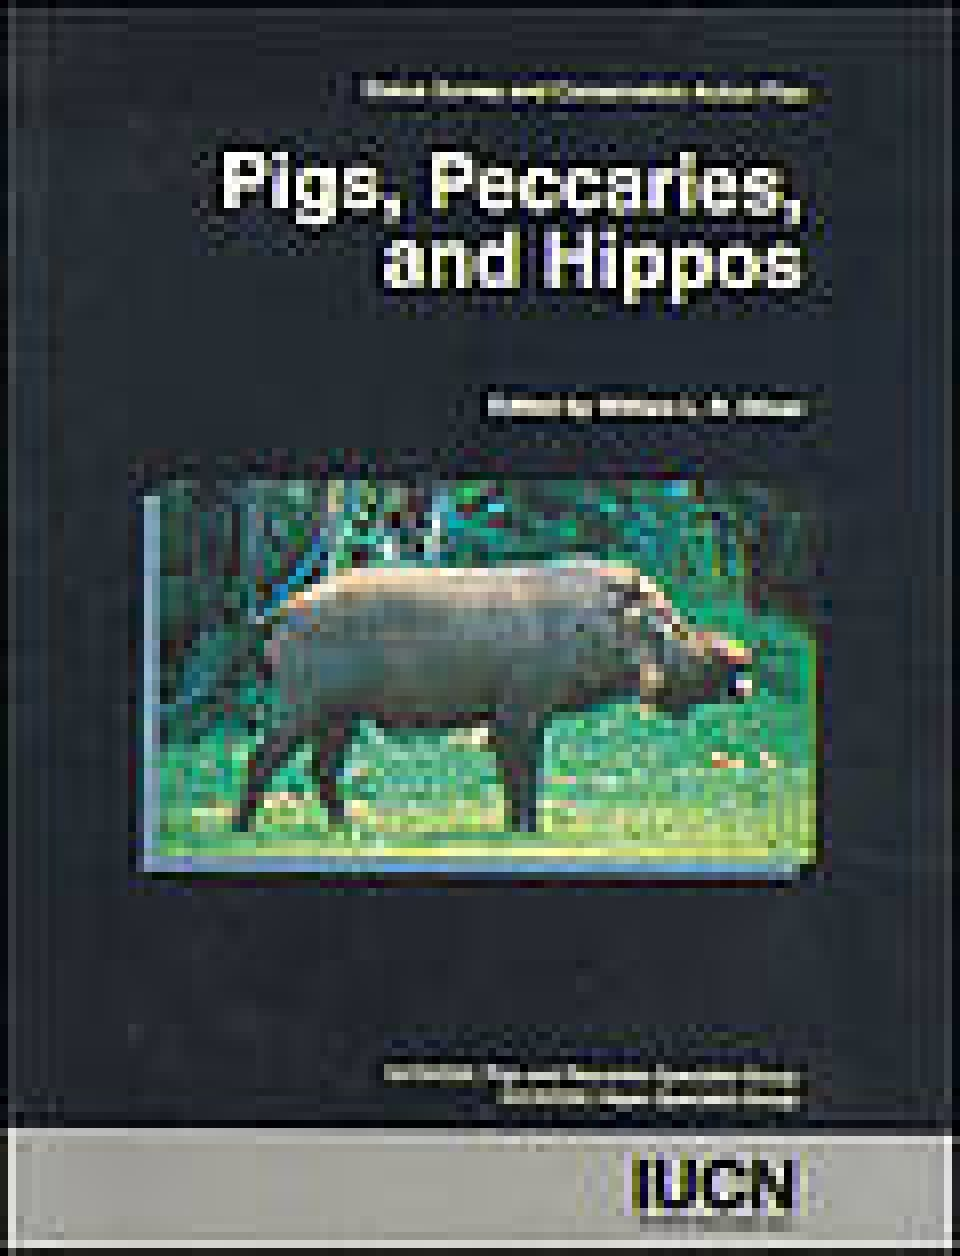 Pigs, Peccaries, and Hippos